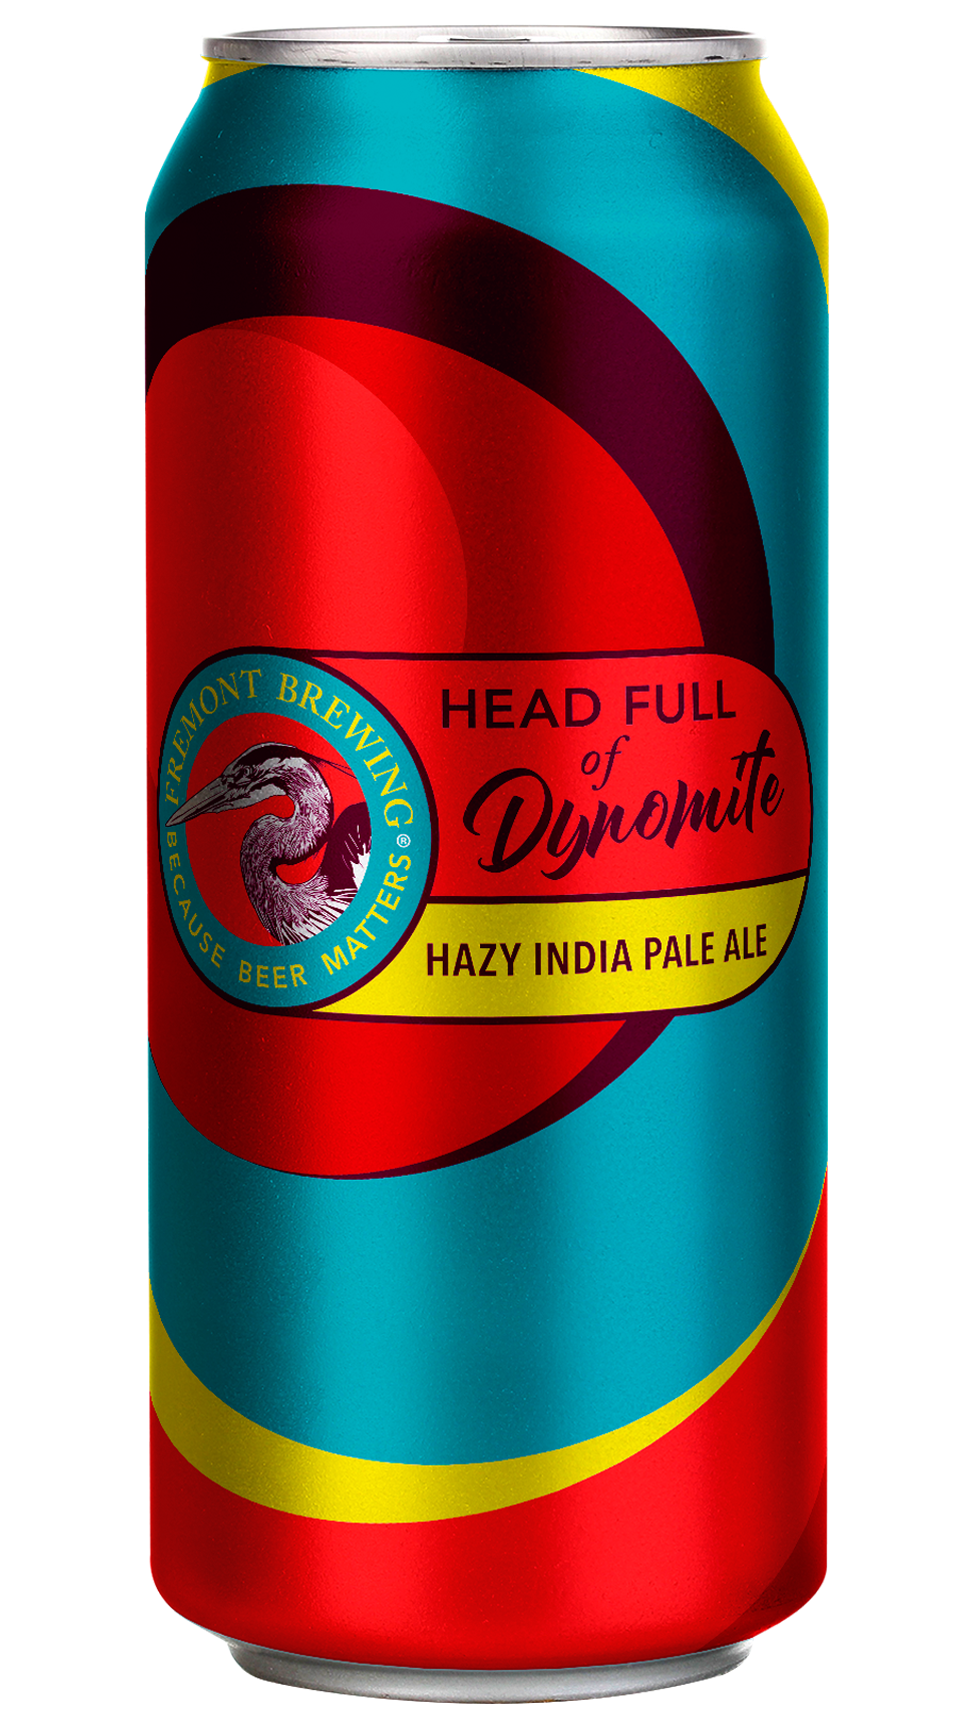 Head Full of Dynomite v.11